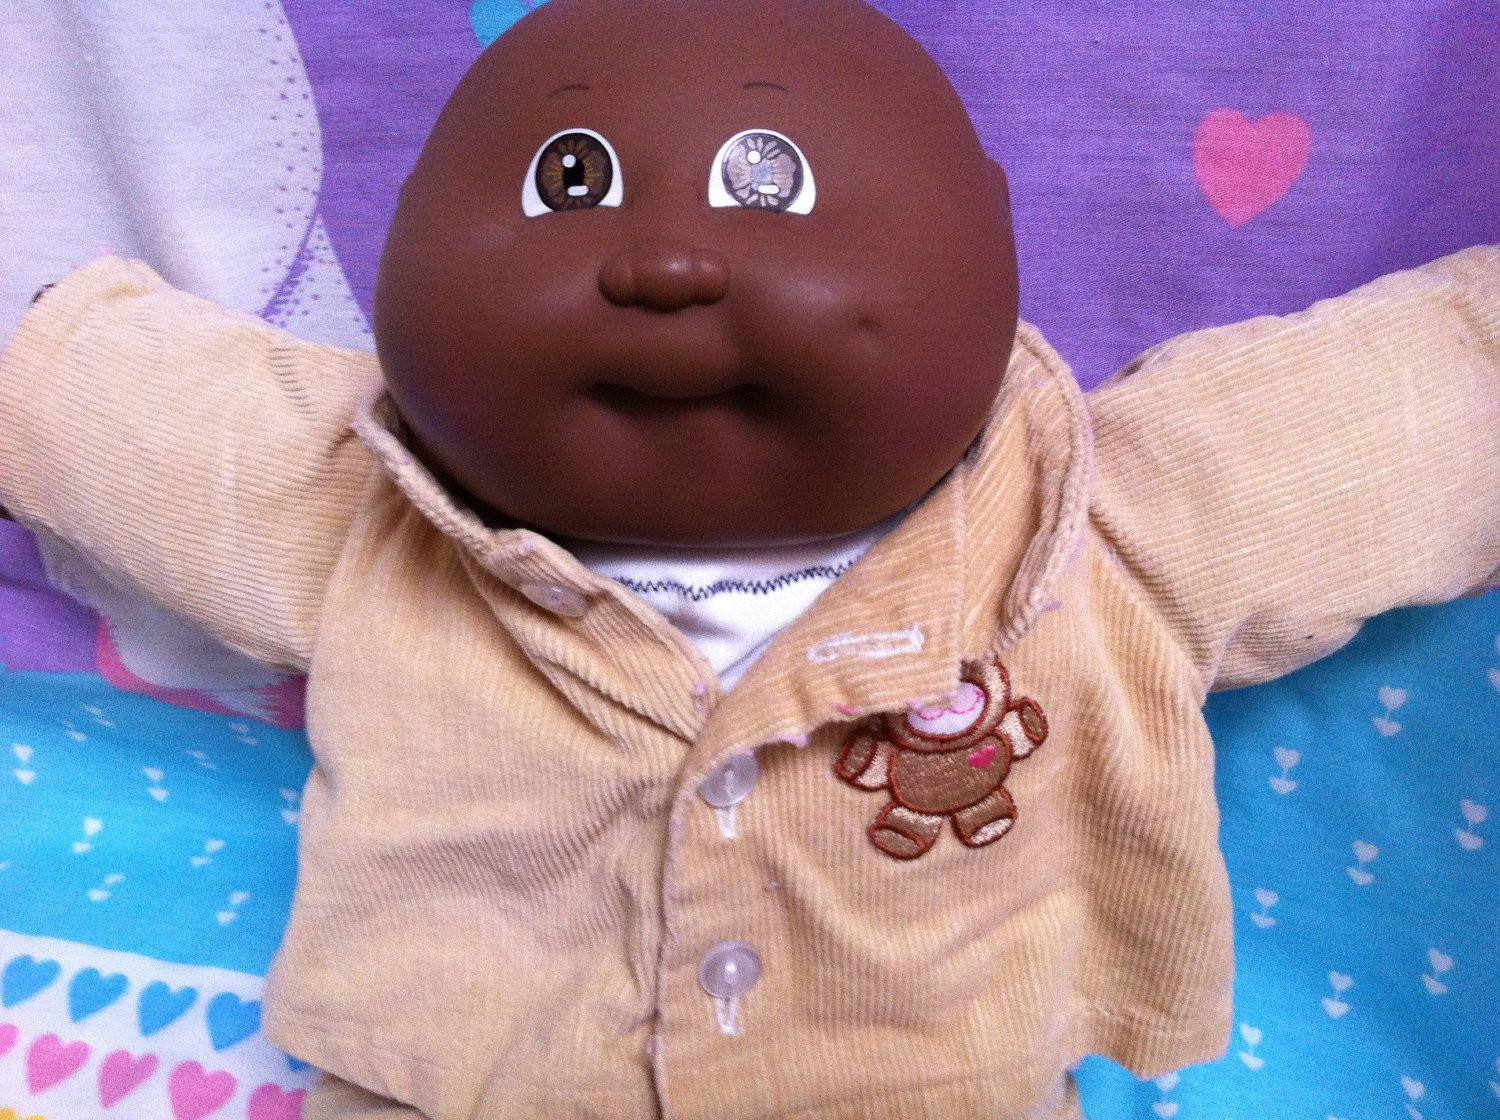 Boy Cabbage Patch Dolls Inspirational Items Similar to Cabbage Patch Doll Boy Preemie African Of Attractive 41 Ideas Boy Cabbage Patch Dolls